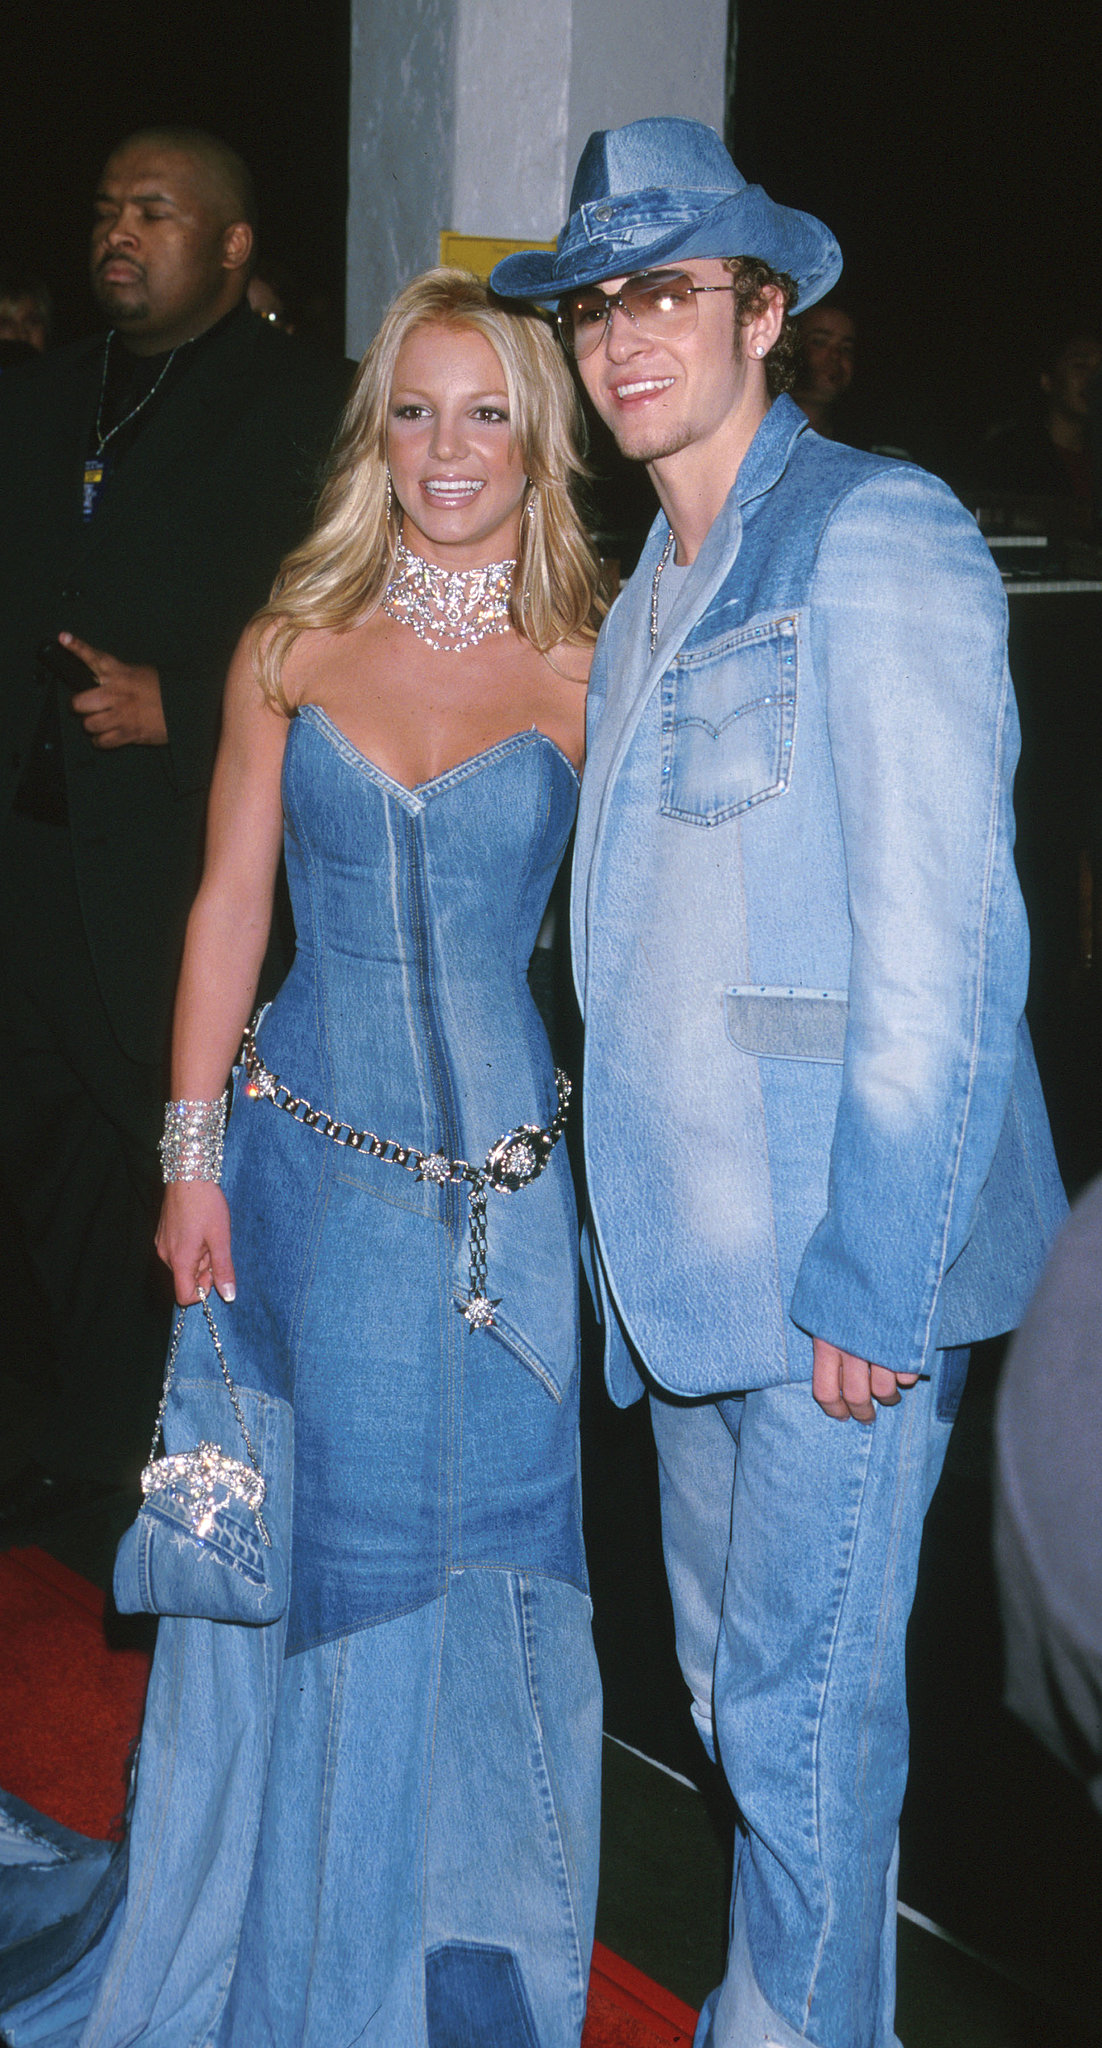 Britney Spears and then-beau Justin Timberlake posed in matching denim ensembles in 2001.